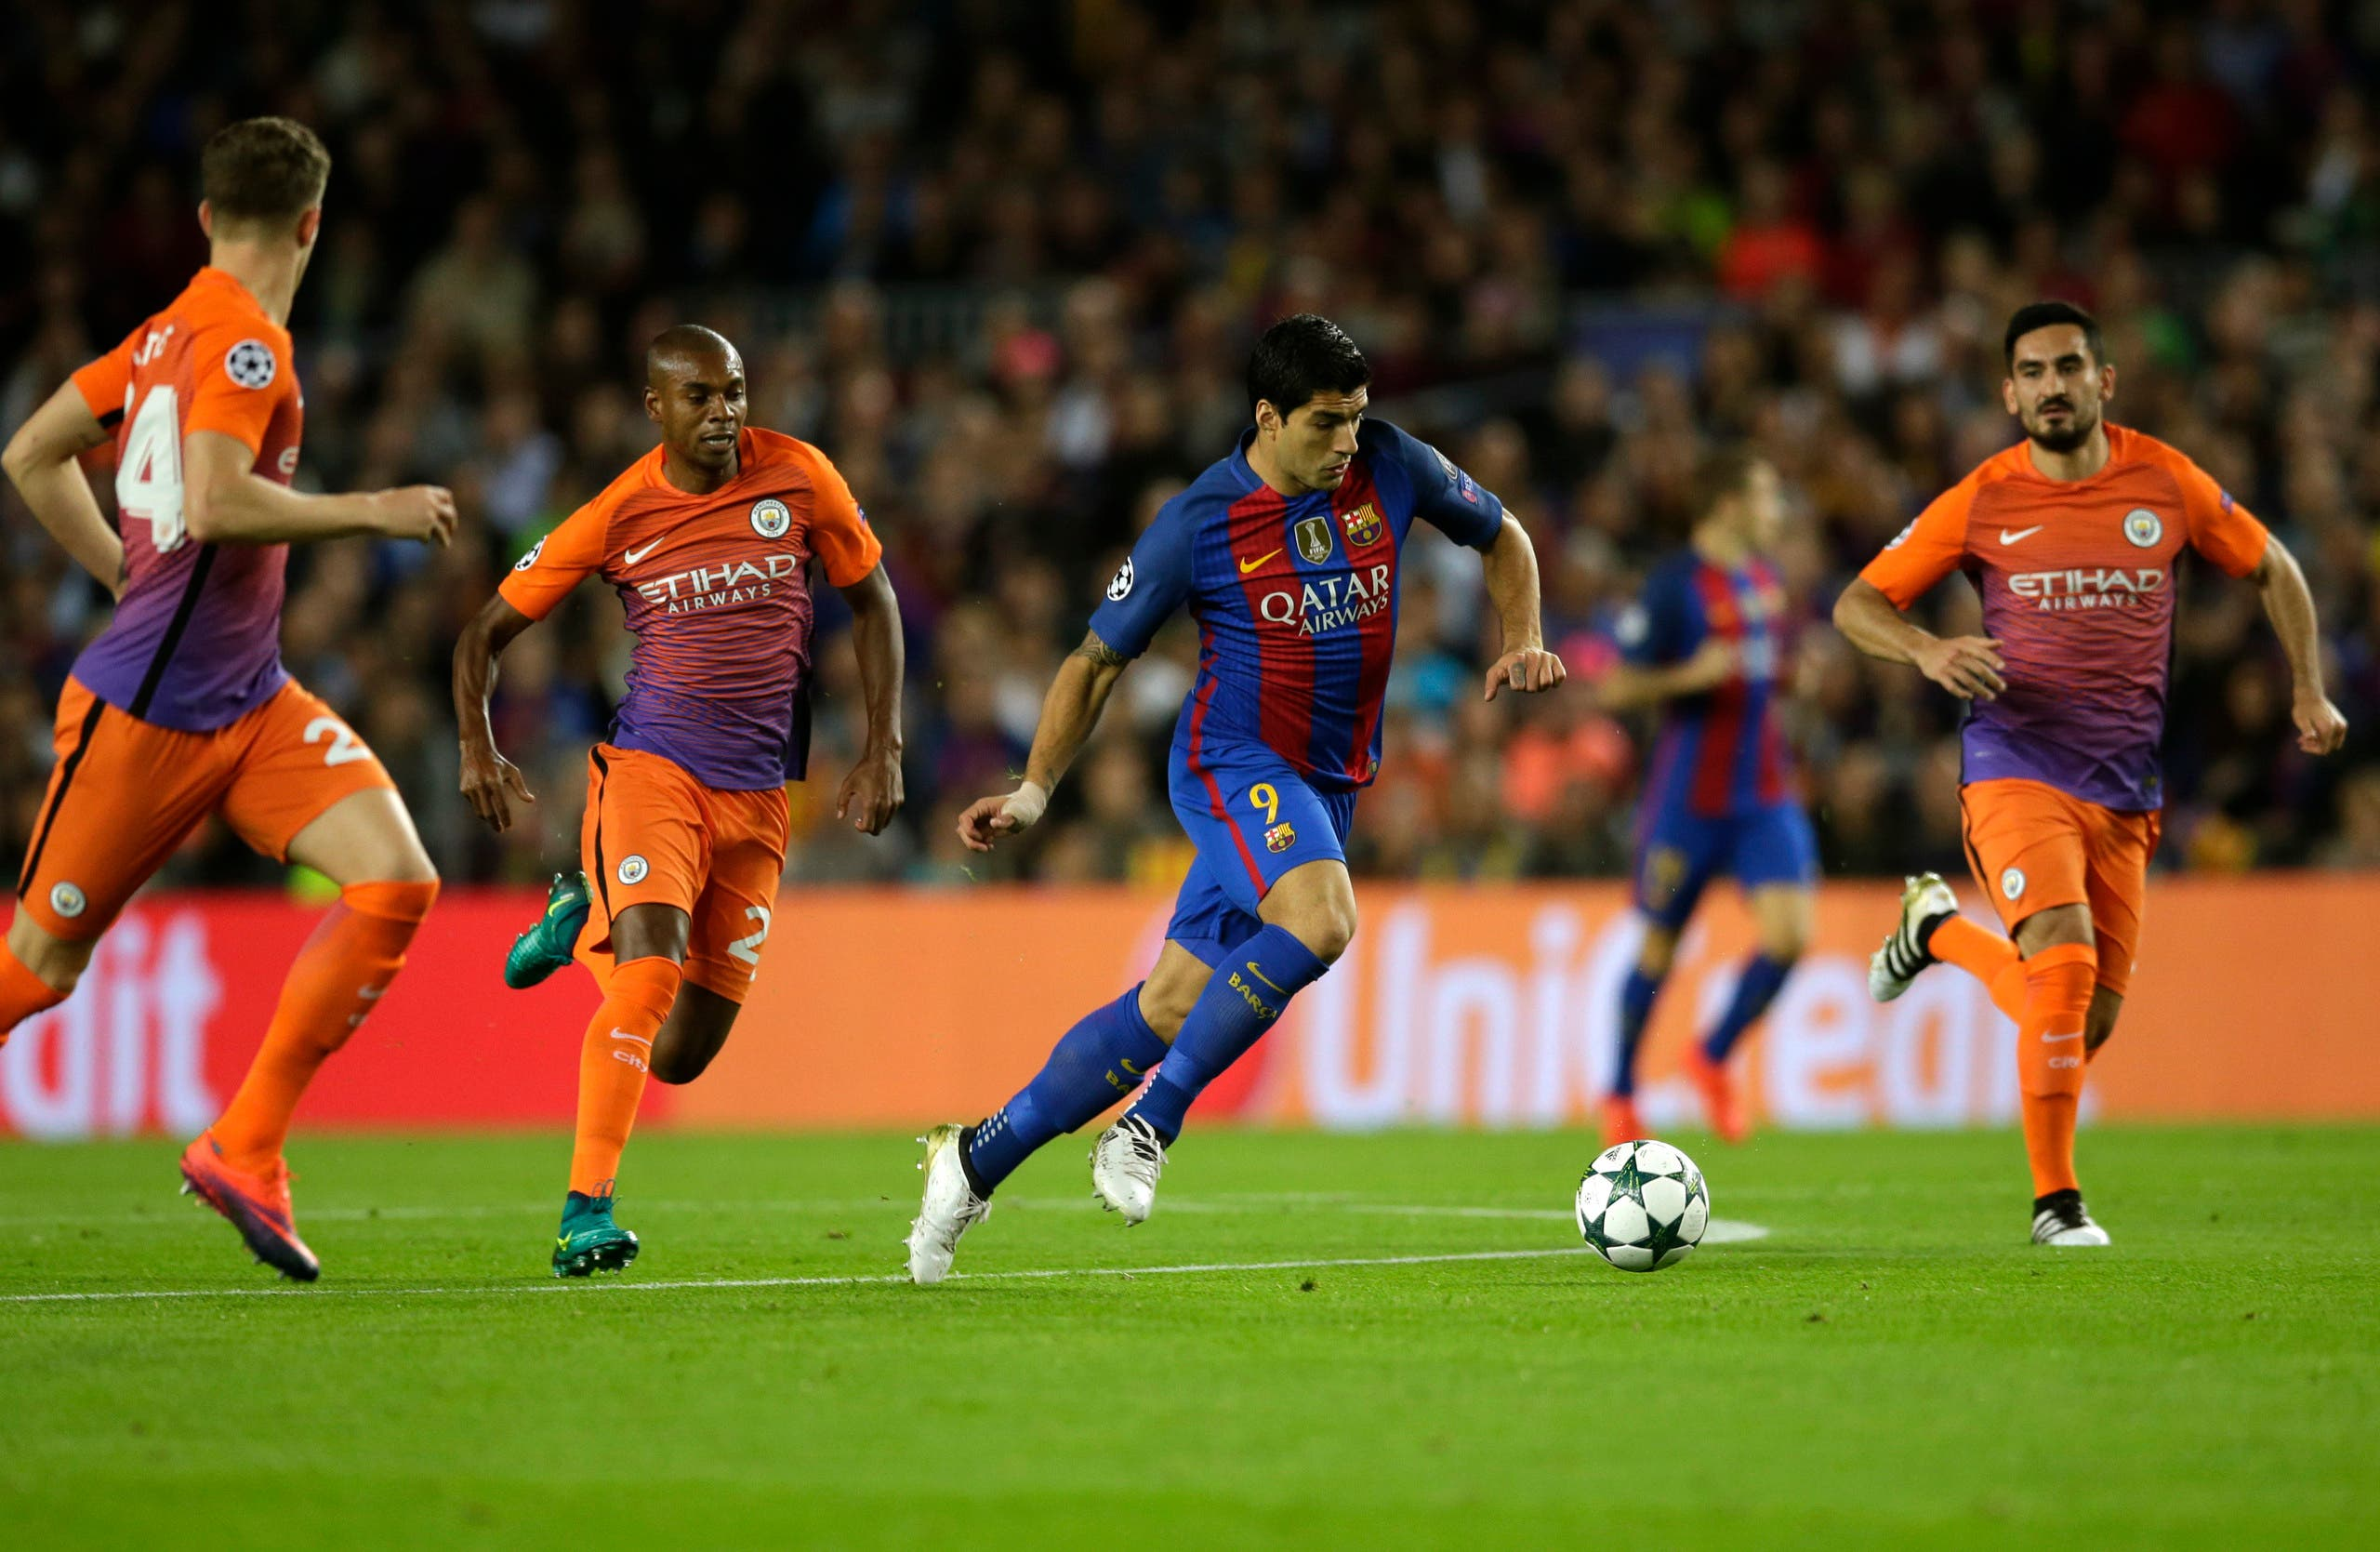 Barcelona's Luis Suarez fights for the ball during a Champions League, Group C soccer match between Barcelona and Manchester City, at Camp Nou stadium in Barcelona, Wednesday, Oct. 19, 2016. (AP)